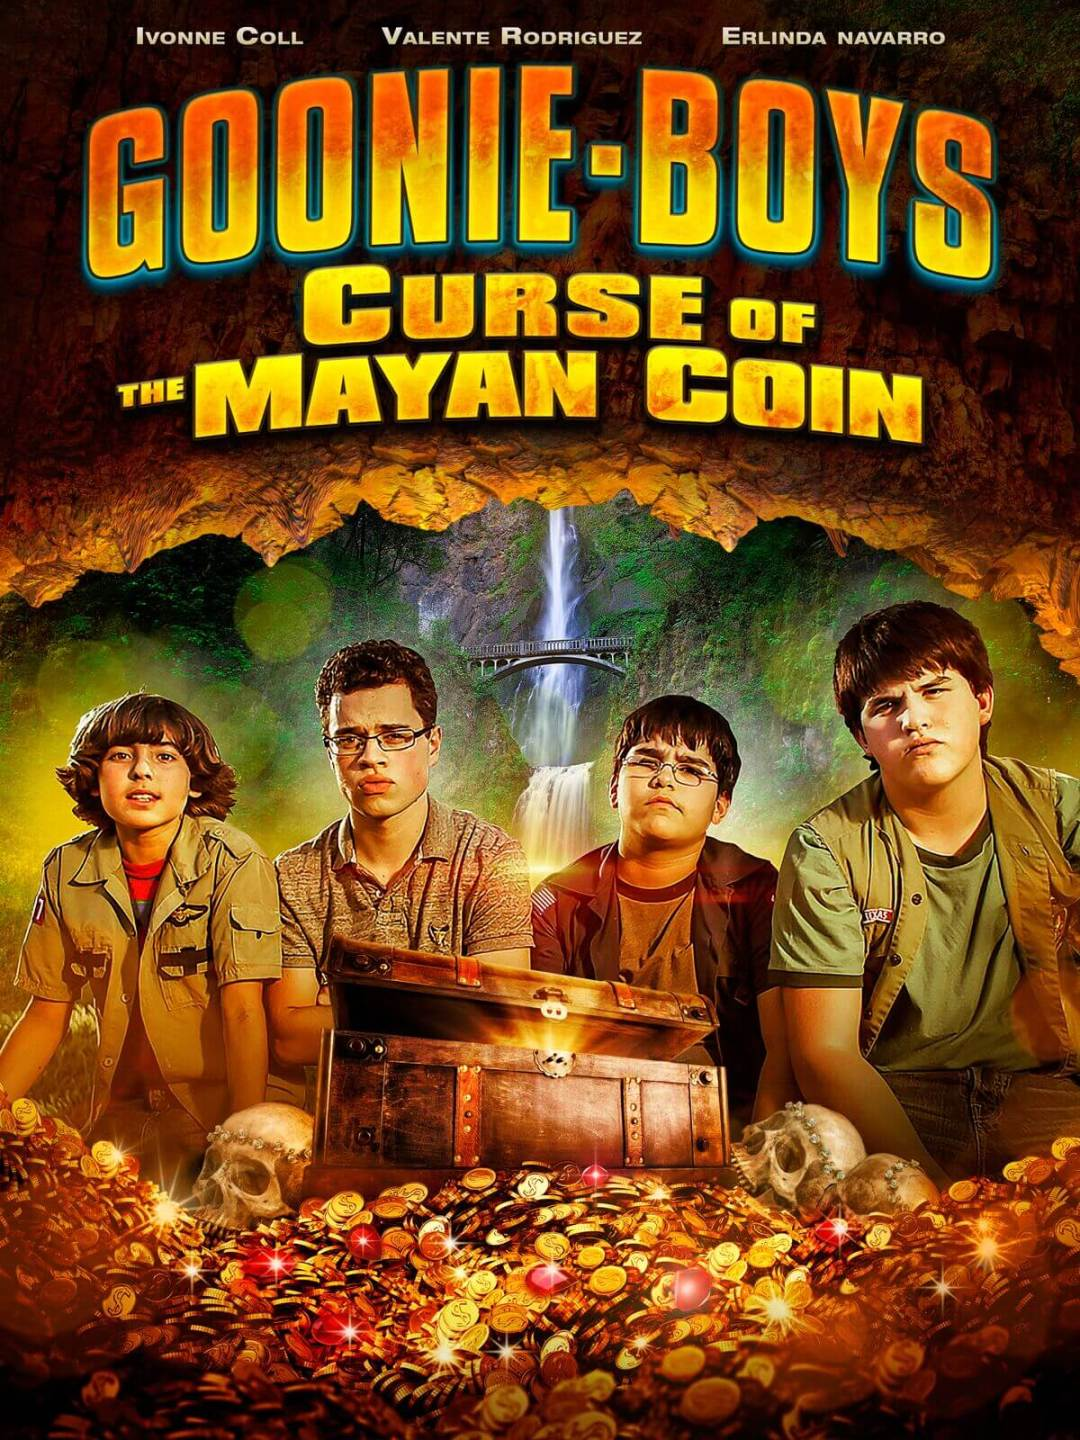 GOONIE BOYS: CURSE OF THE MAYAN COIN